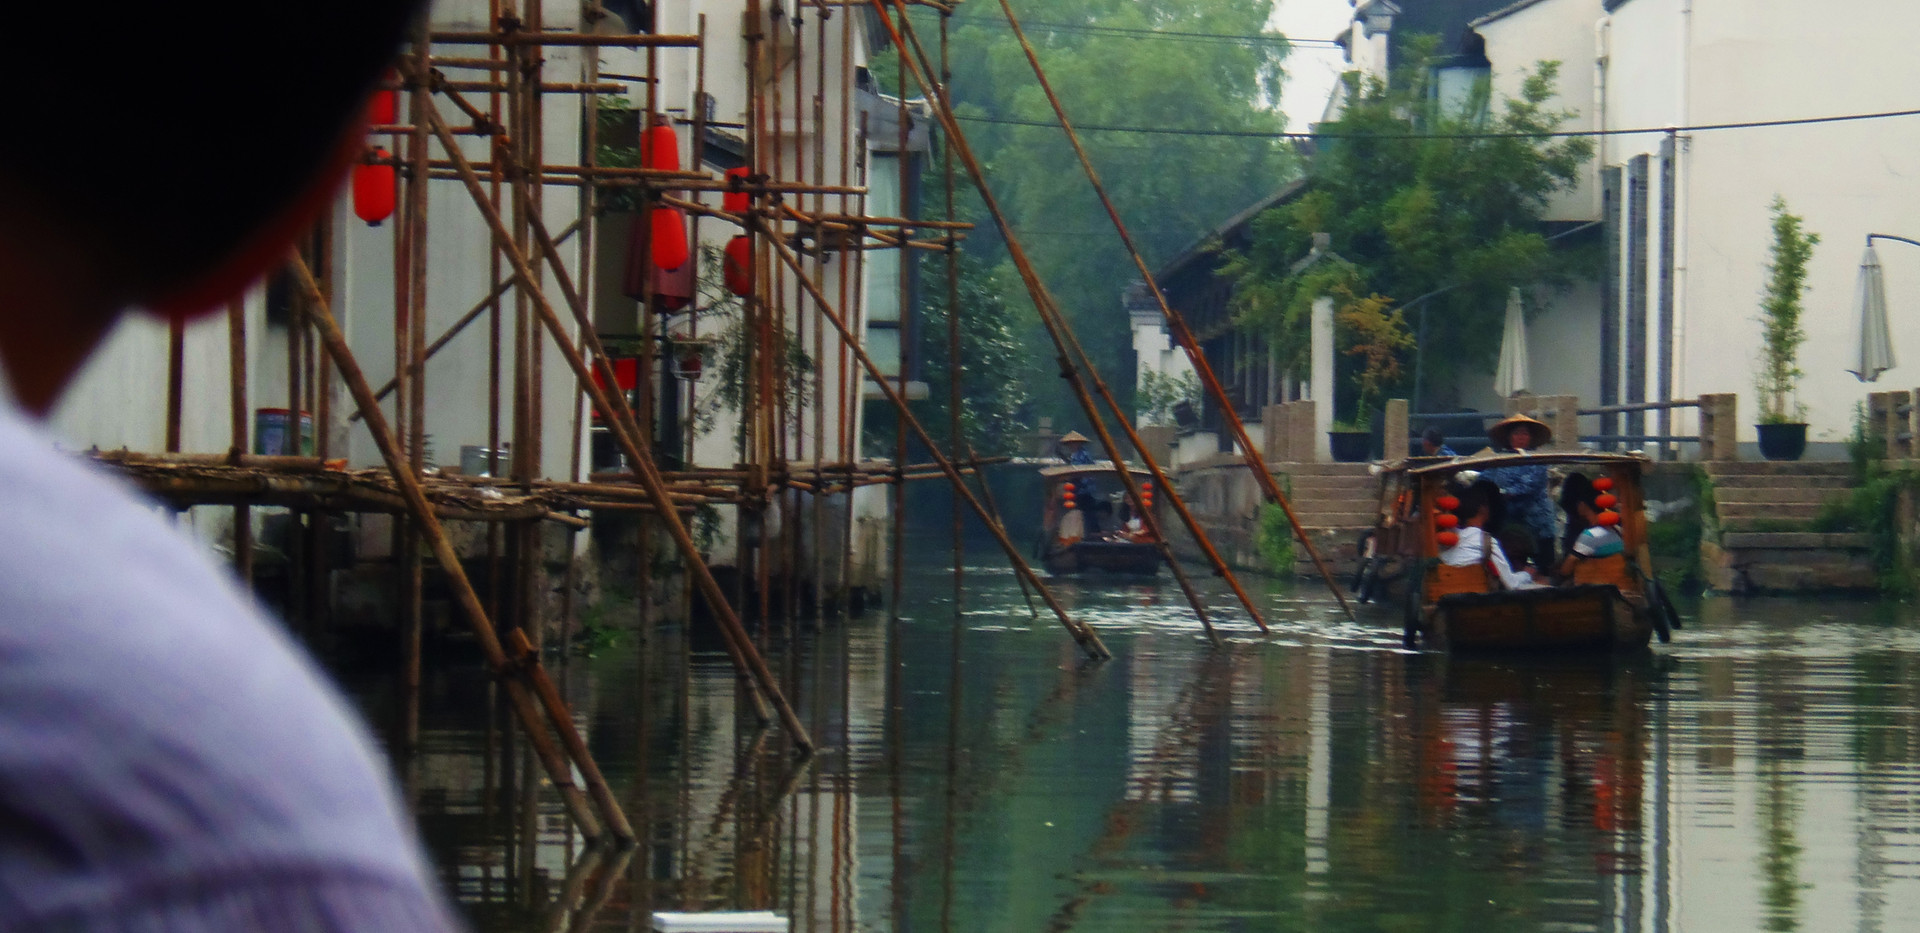 (坐船游览苏州古运河) A Boat Ride Through the Canals of Suzhou